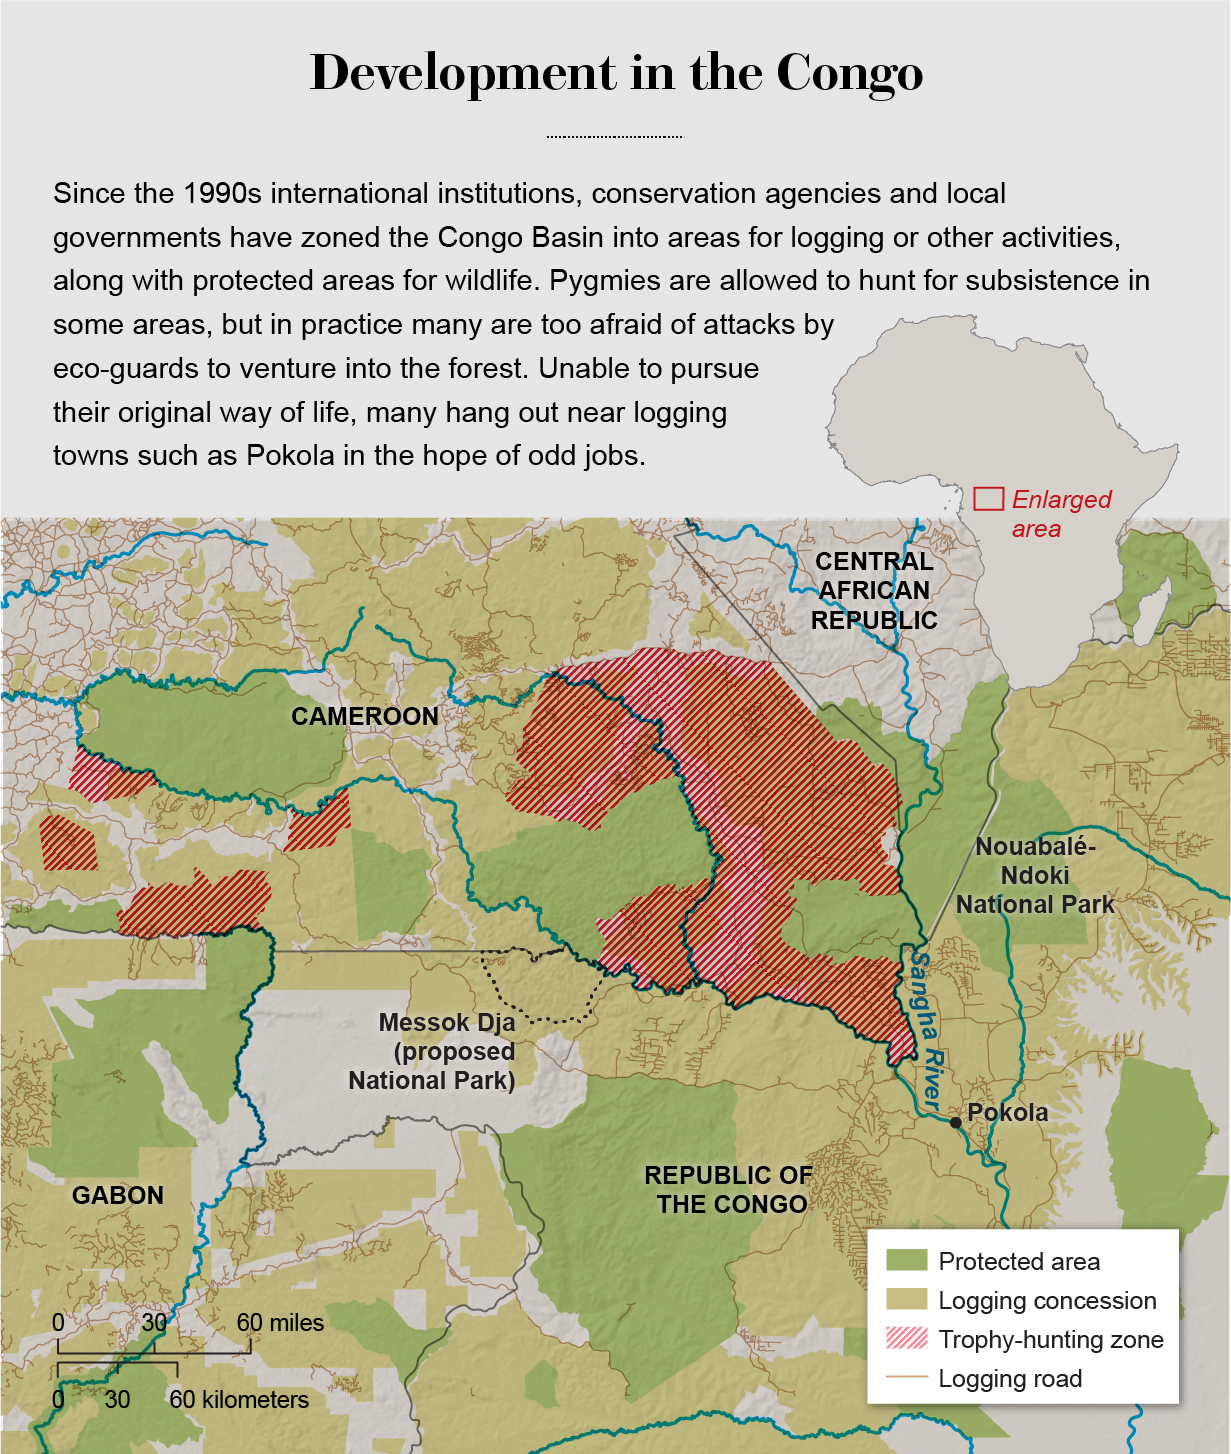 Map shows protected areas, logging concessions, logging roads and trophy-hunting areas in the Congo Basin